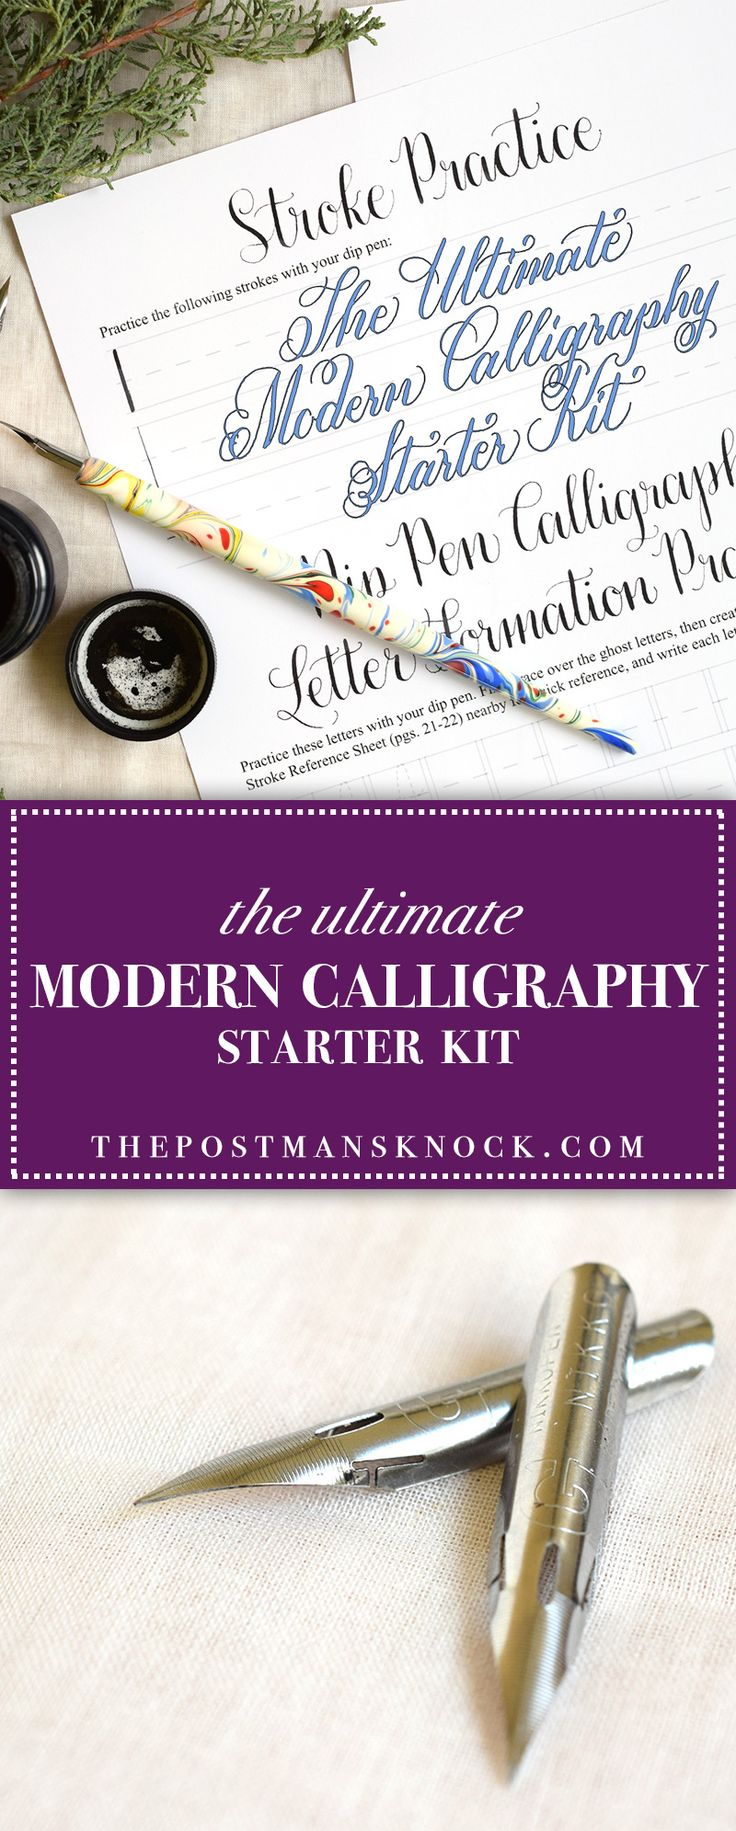 The Ultimate Modern Calligraphy Starter Kit